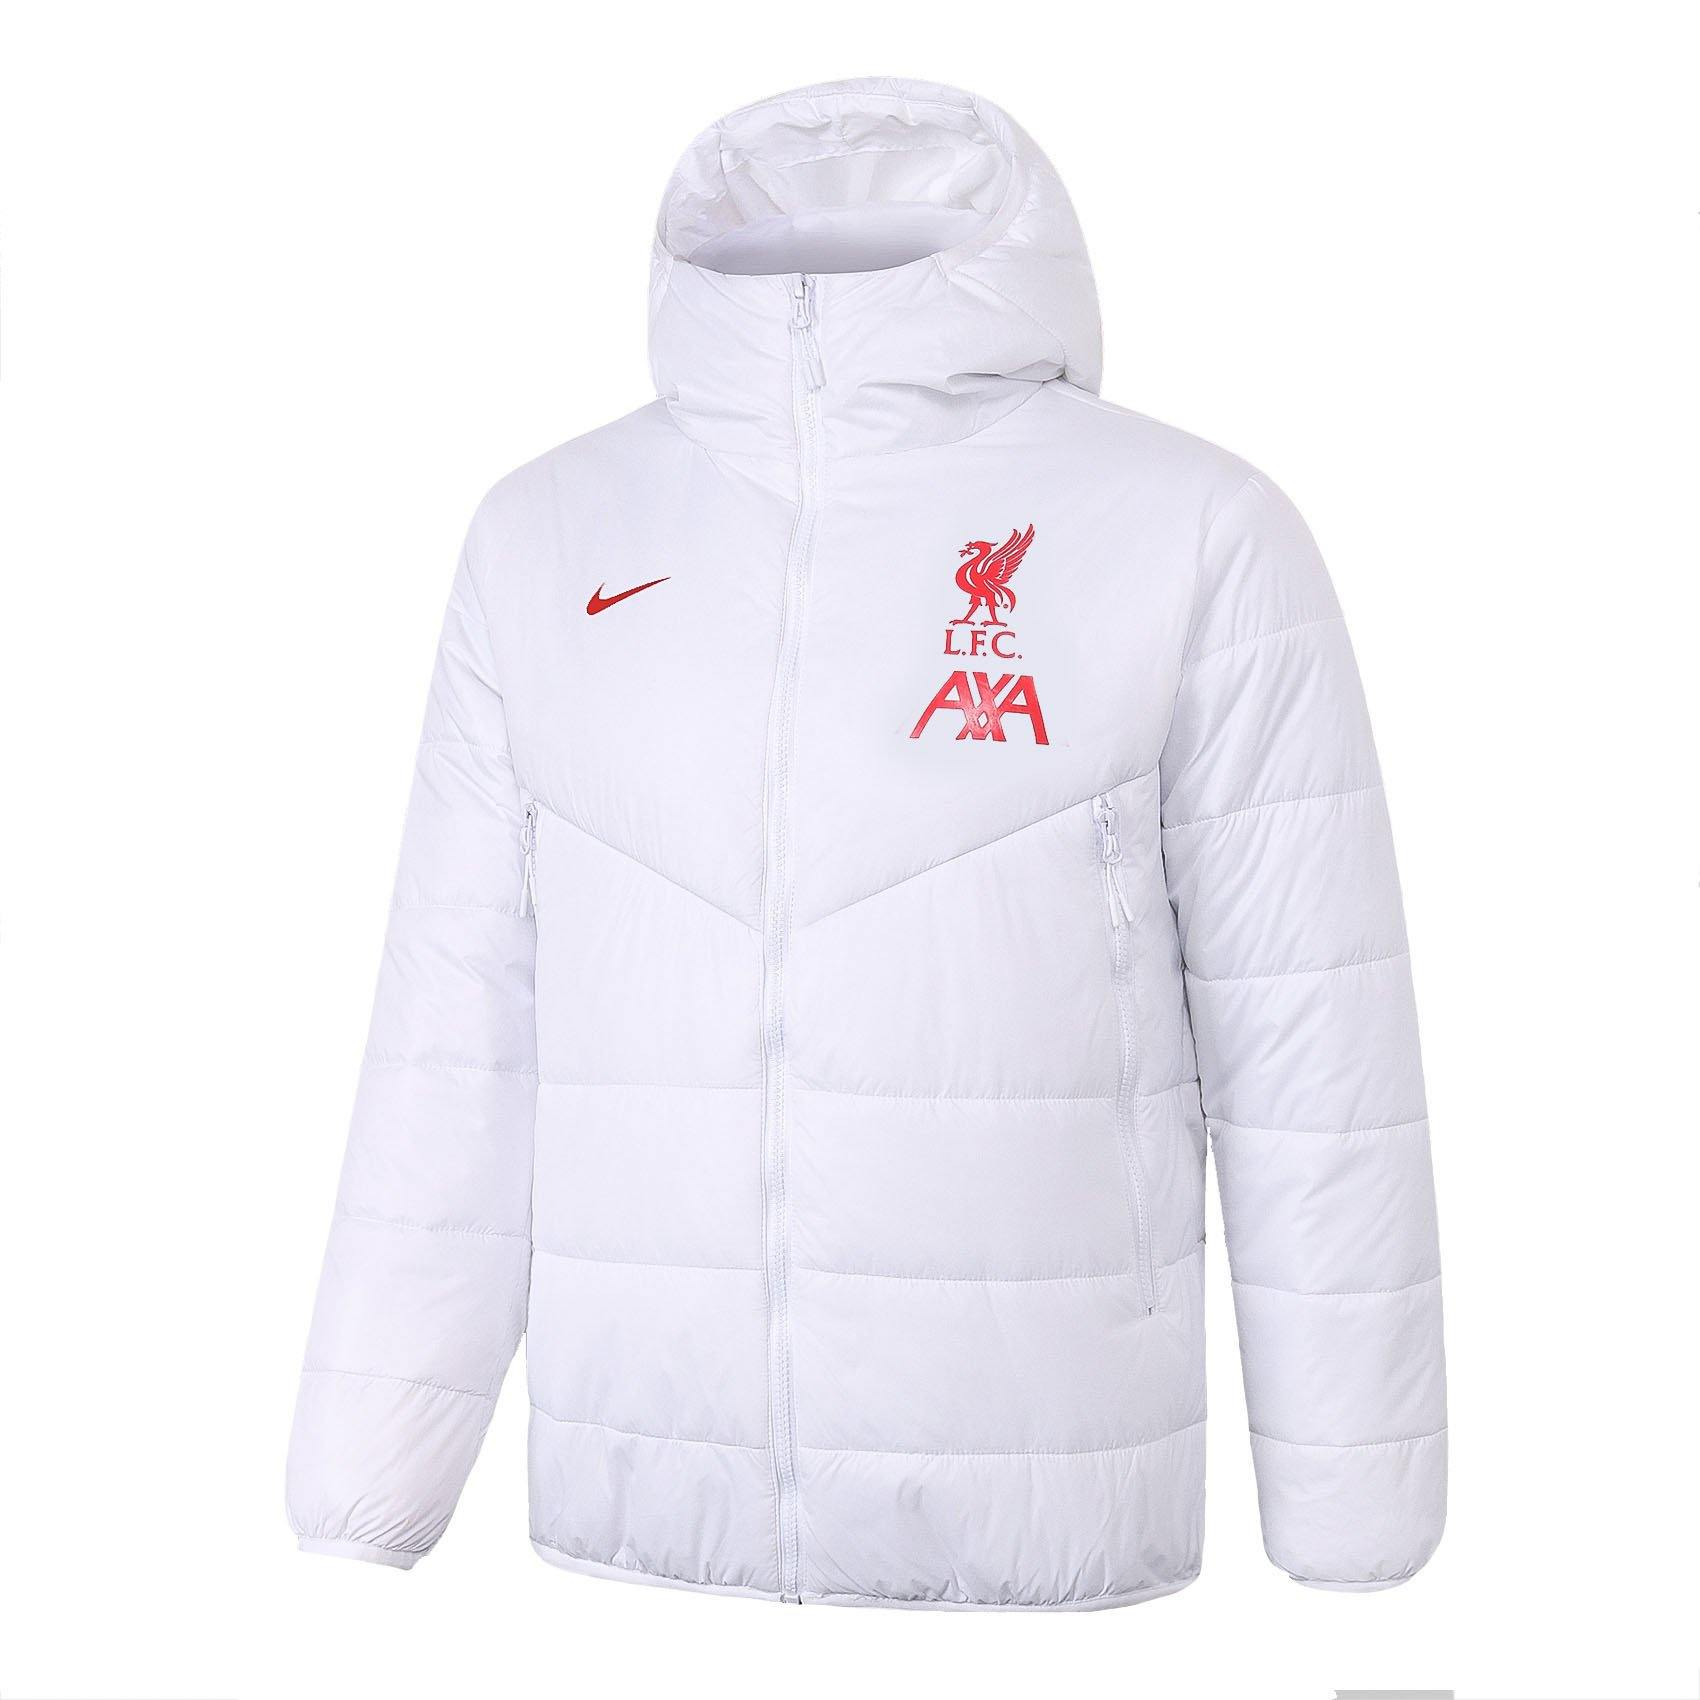 Doudoune Liverpool Nike Blanc 2021 Homme freeshipping - Foot Online